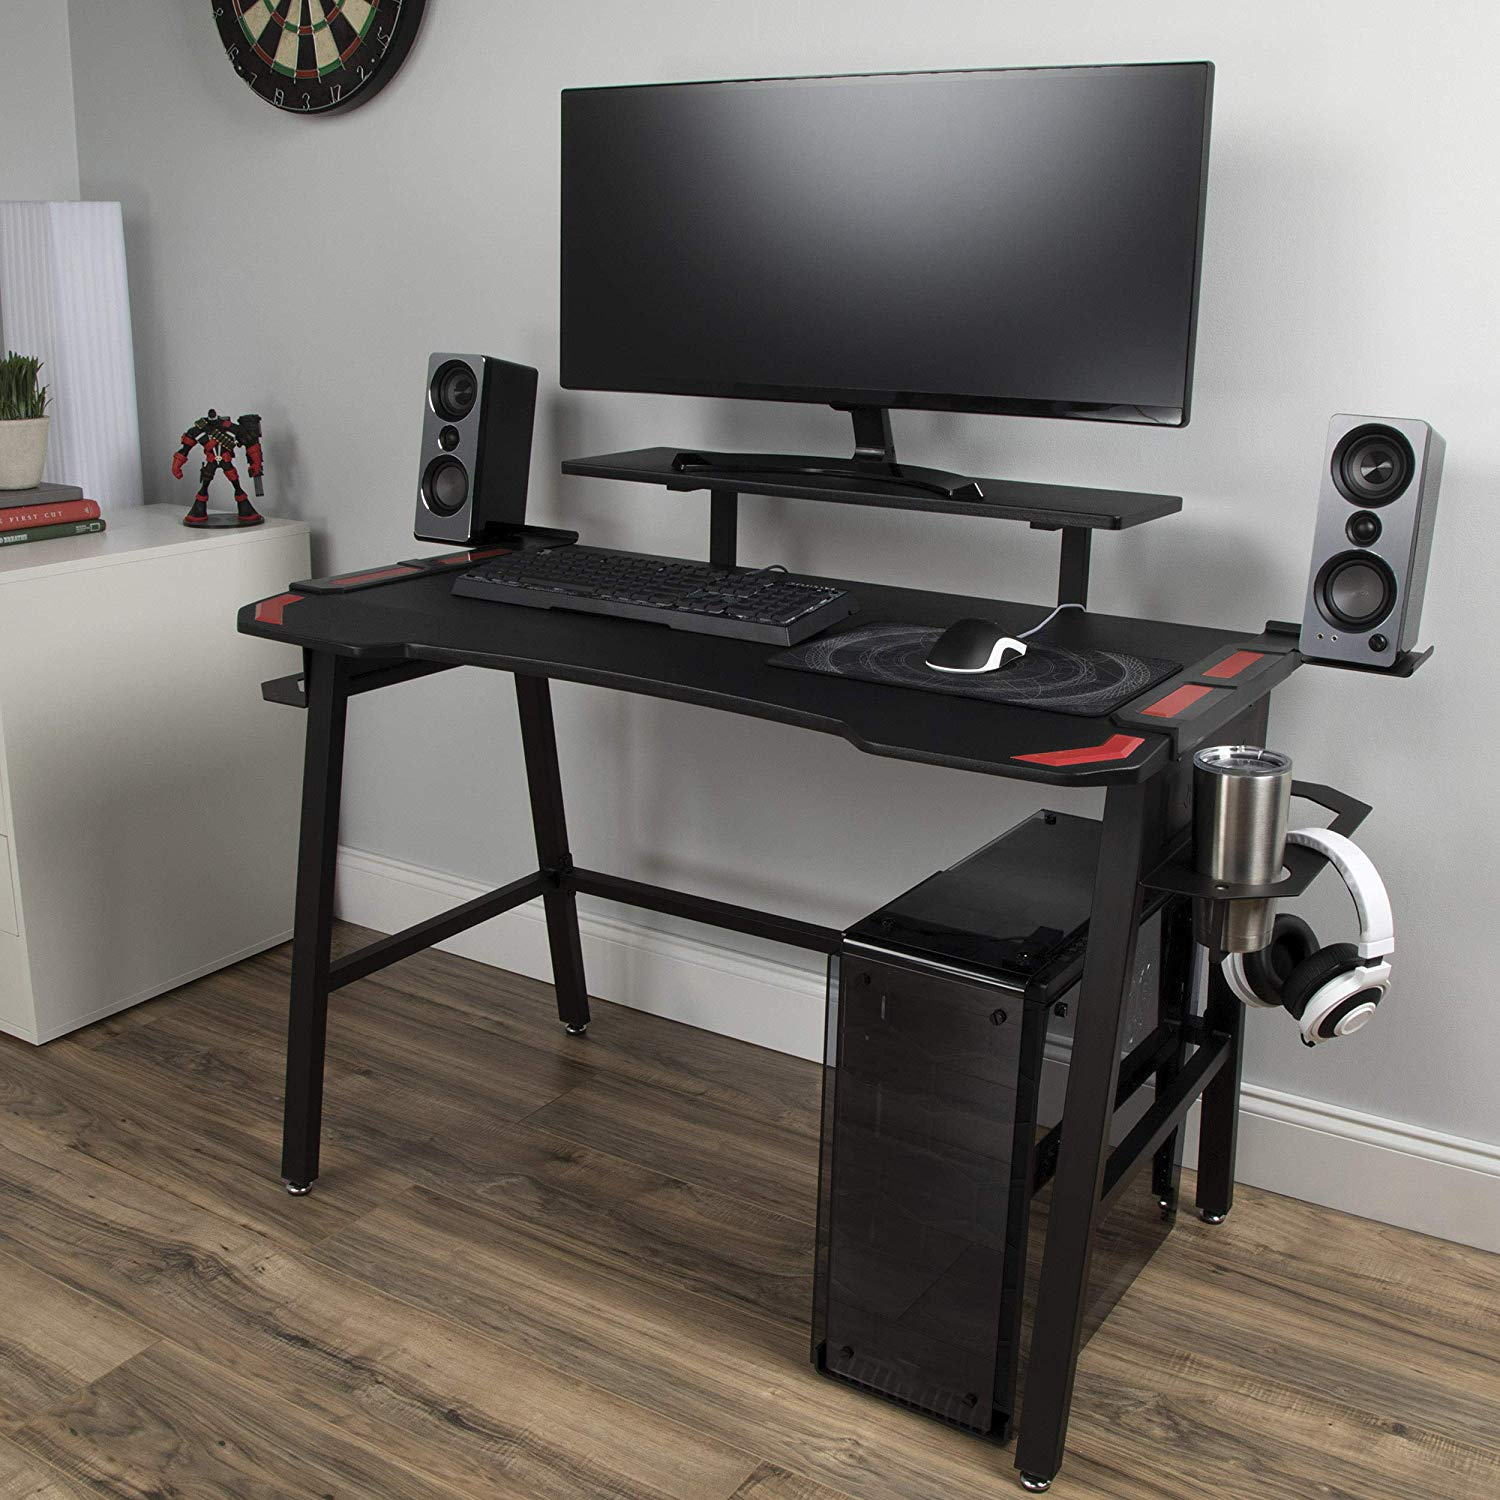 RESPAWN 1010 Gaming Computer Desk